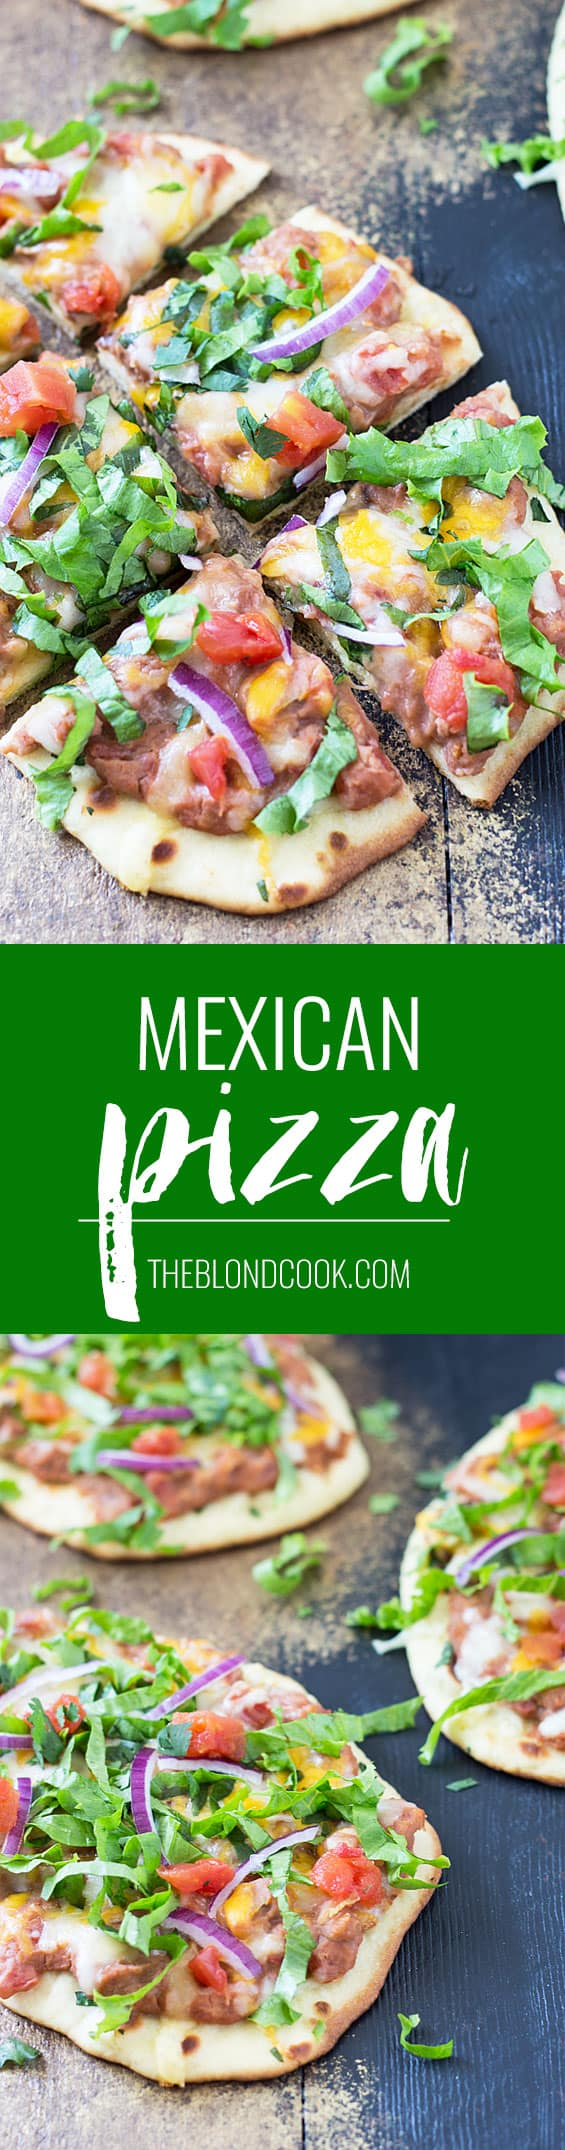 Mexican Pizza - This pizza with Ro*Tel and refried beans is SO EASY and delicious!